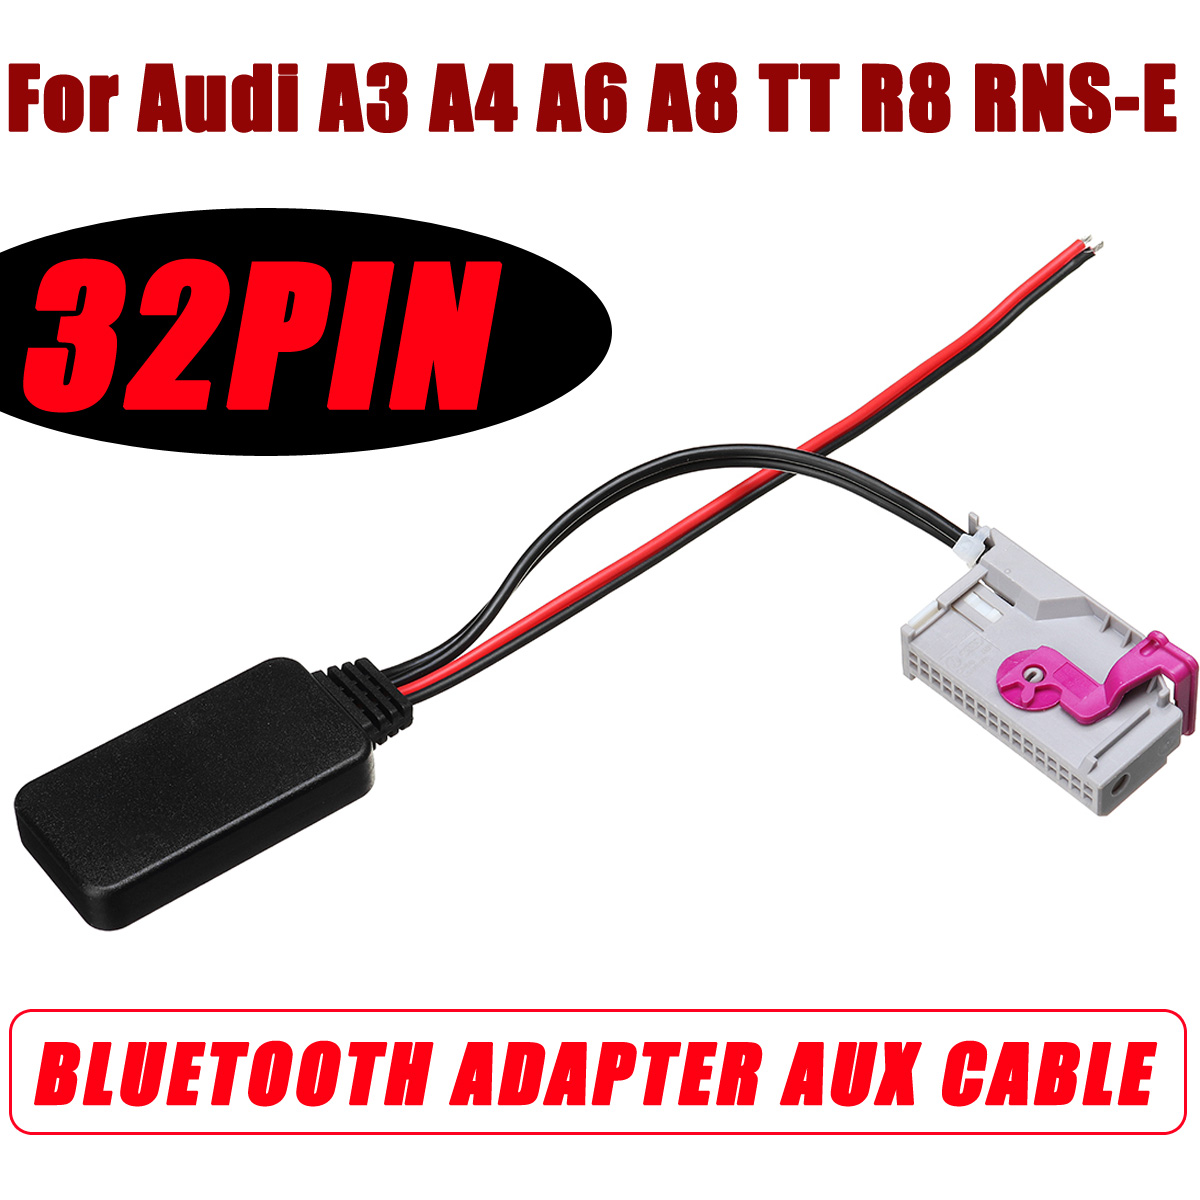 Audi Products In Home Bluetooth House Adapter Cheap All A3 For Full UMVSzp